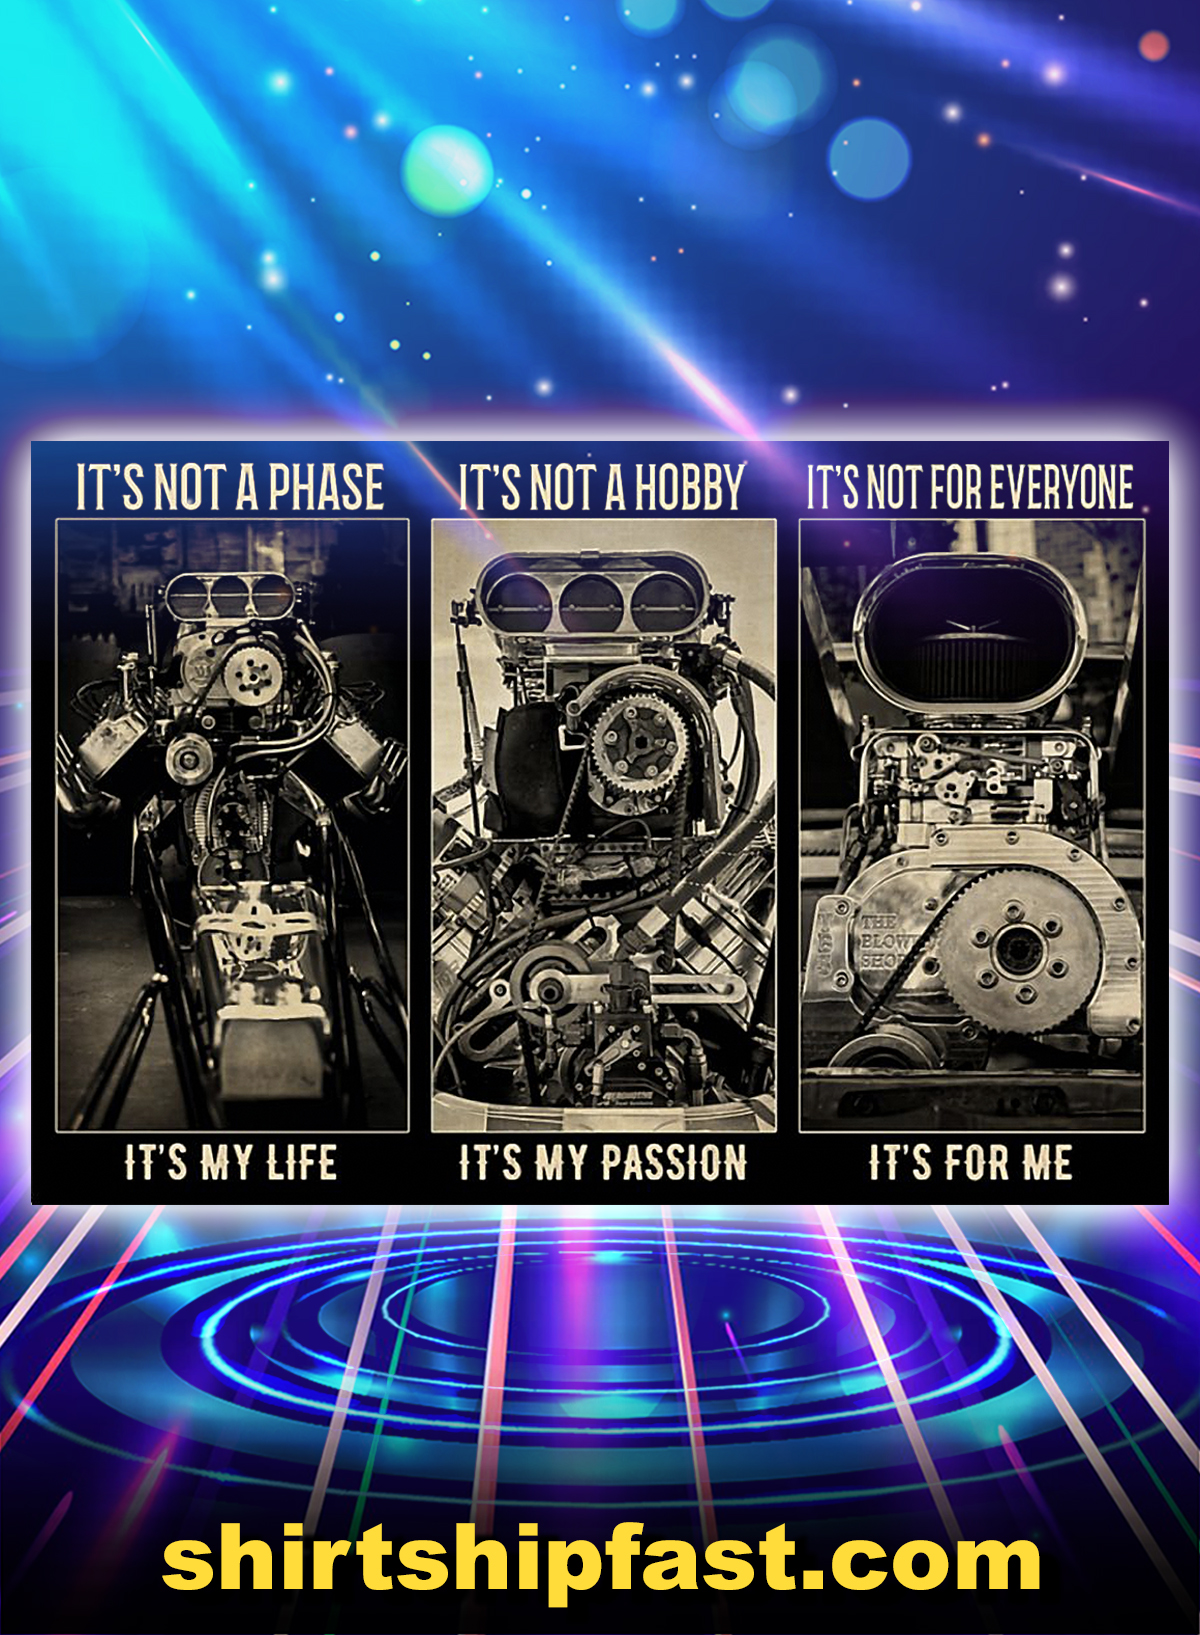 BW engine It's not a phase It's not a hobby It's not for everyone poster - A4